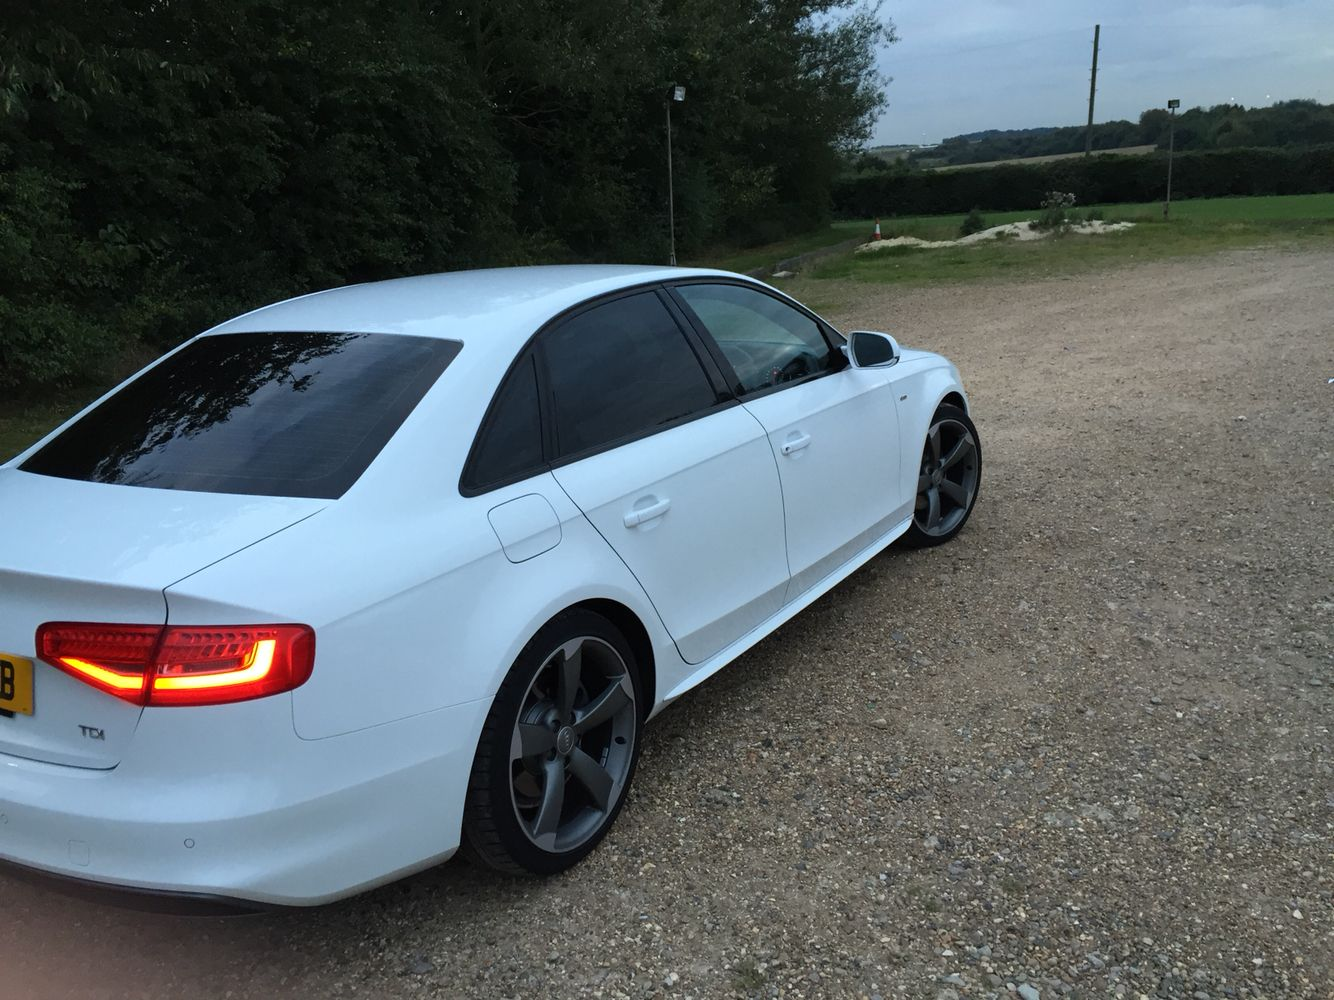 Audi A4 White S Line Black Edition Small Luxury Cars Audi A4 New Cars